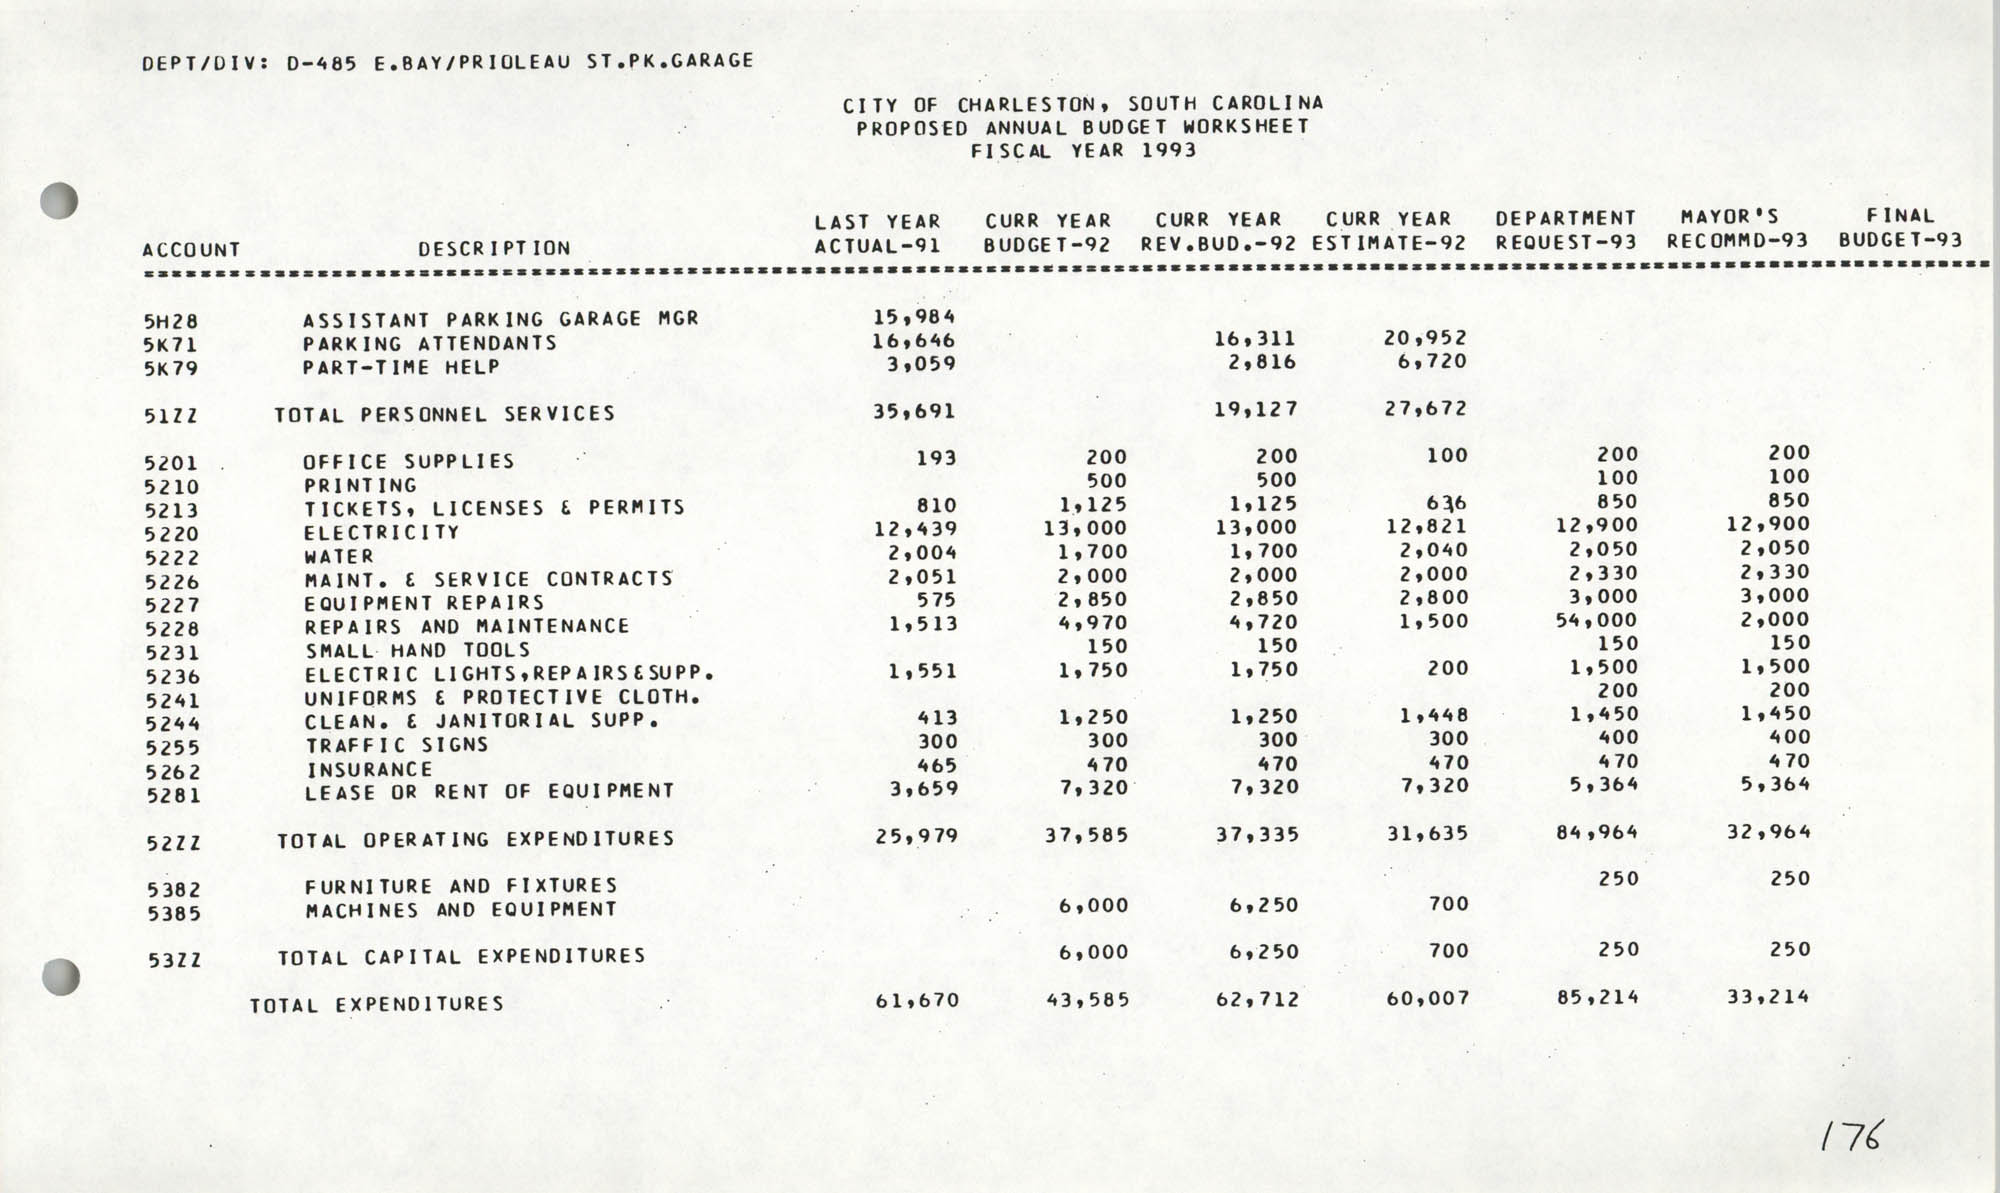 The City Council of Charleston, South Carolina, 1993 Budget, Page 176